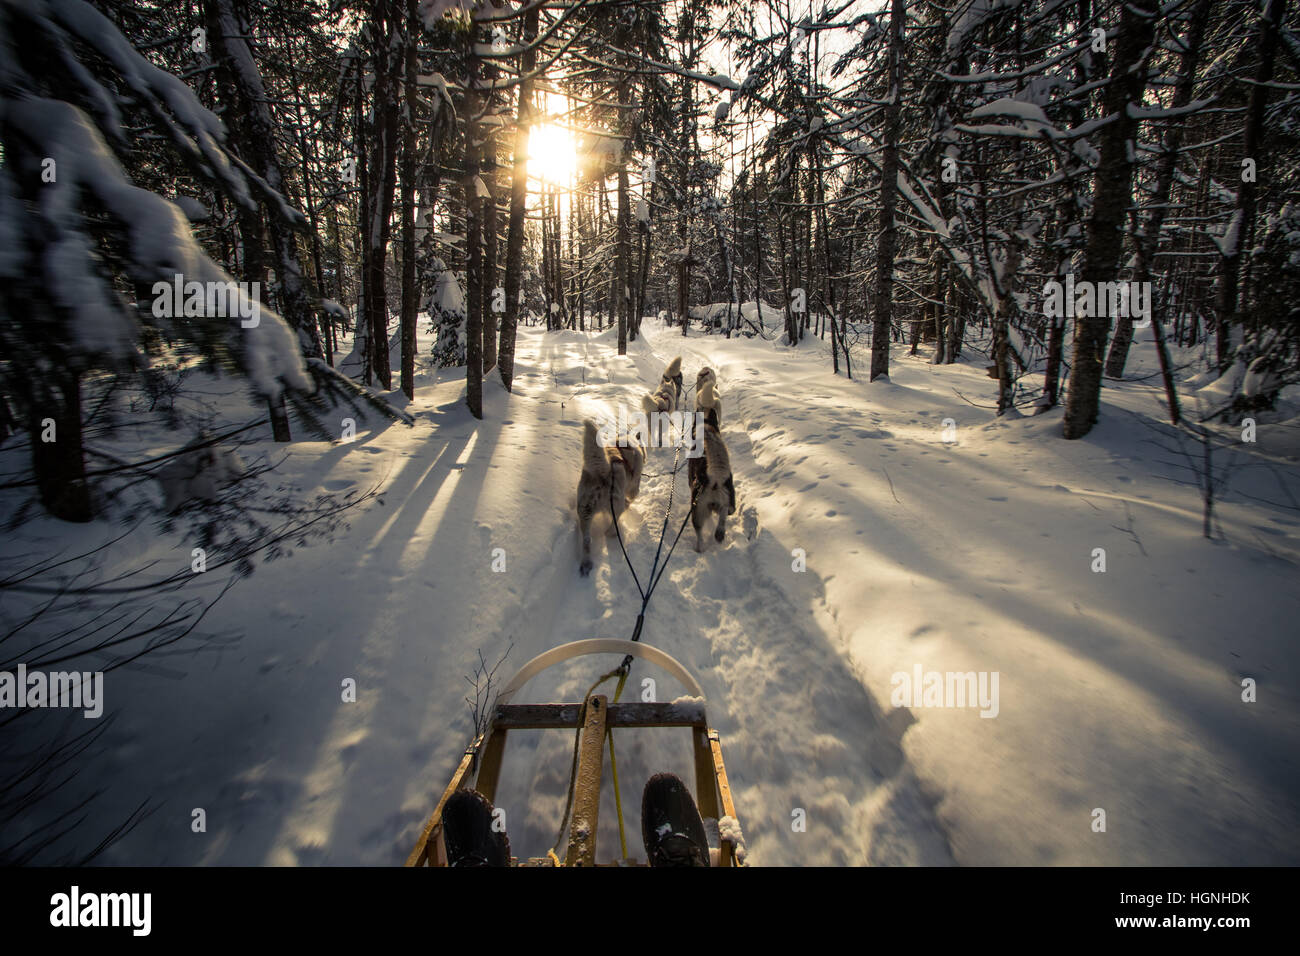 Amazing sight of a Canadian Winter - Stock Image